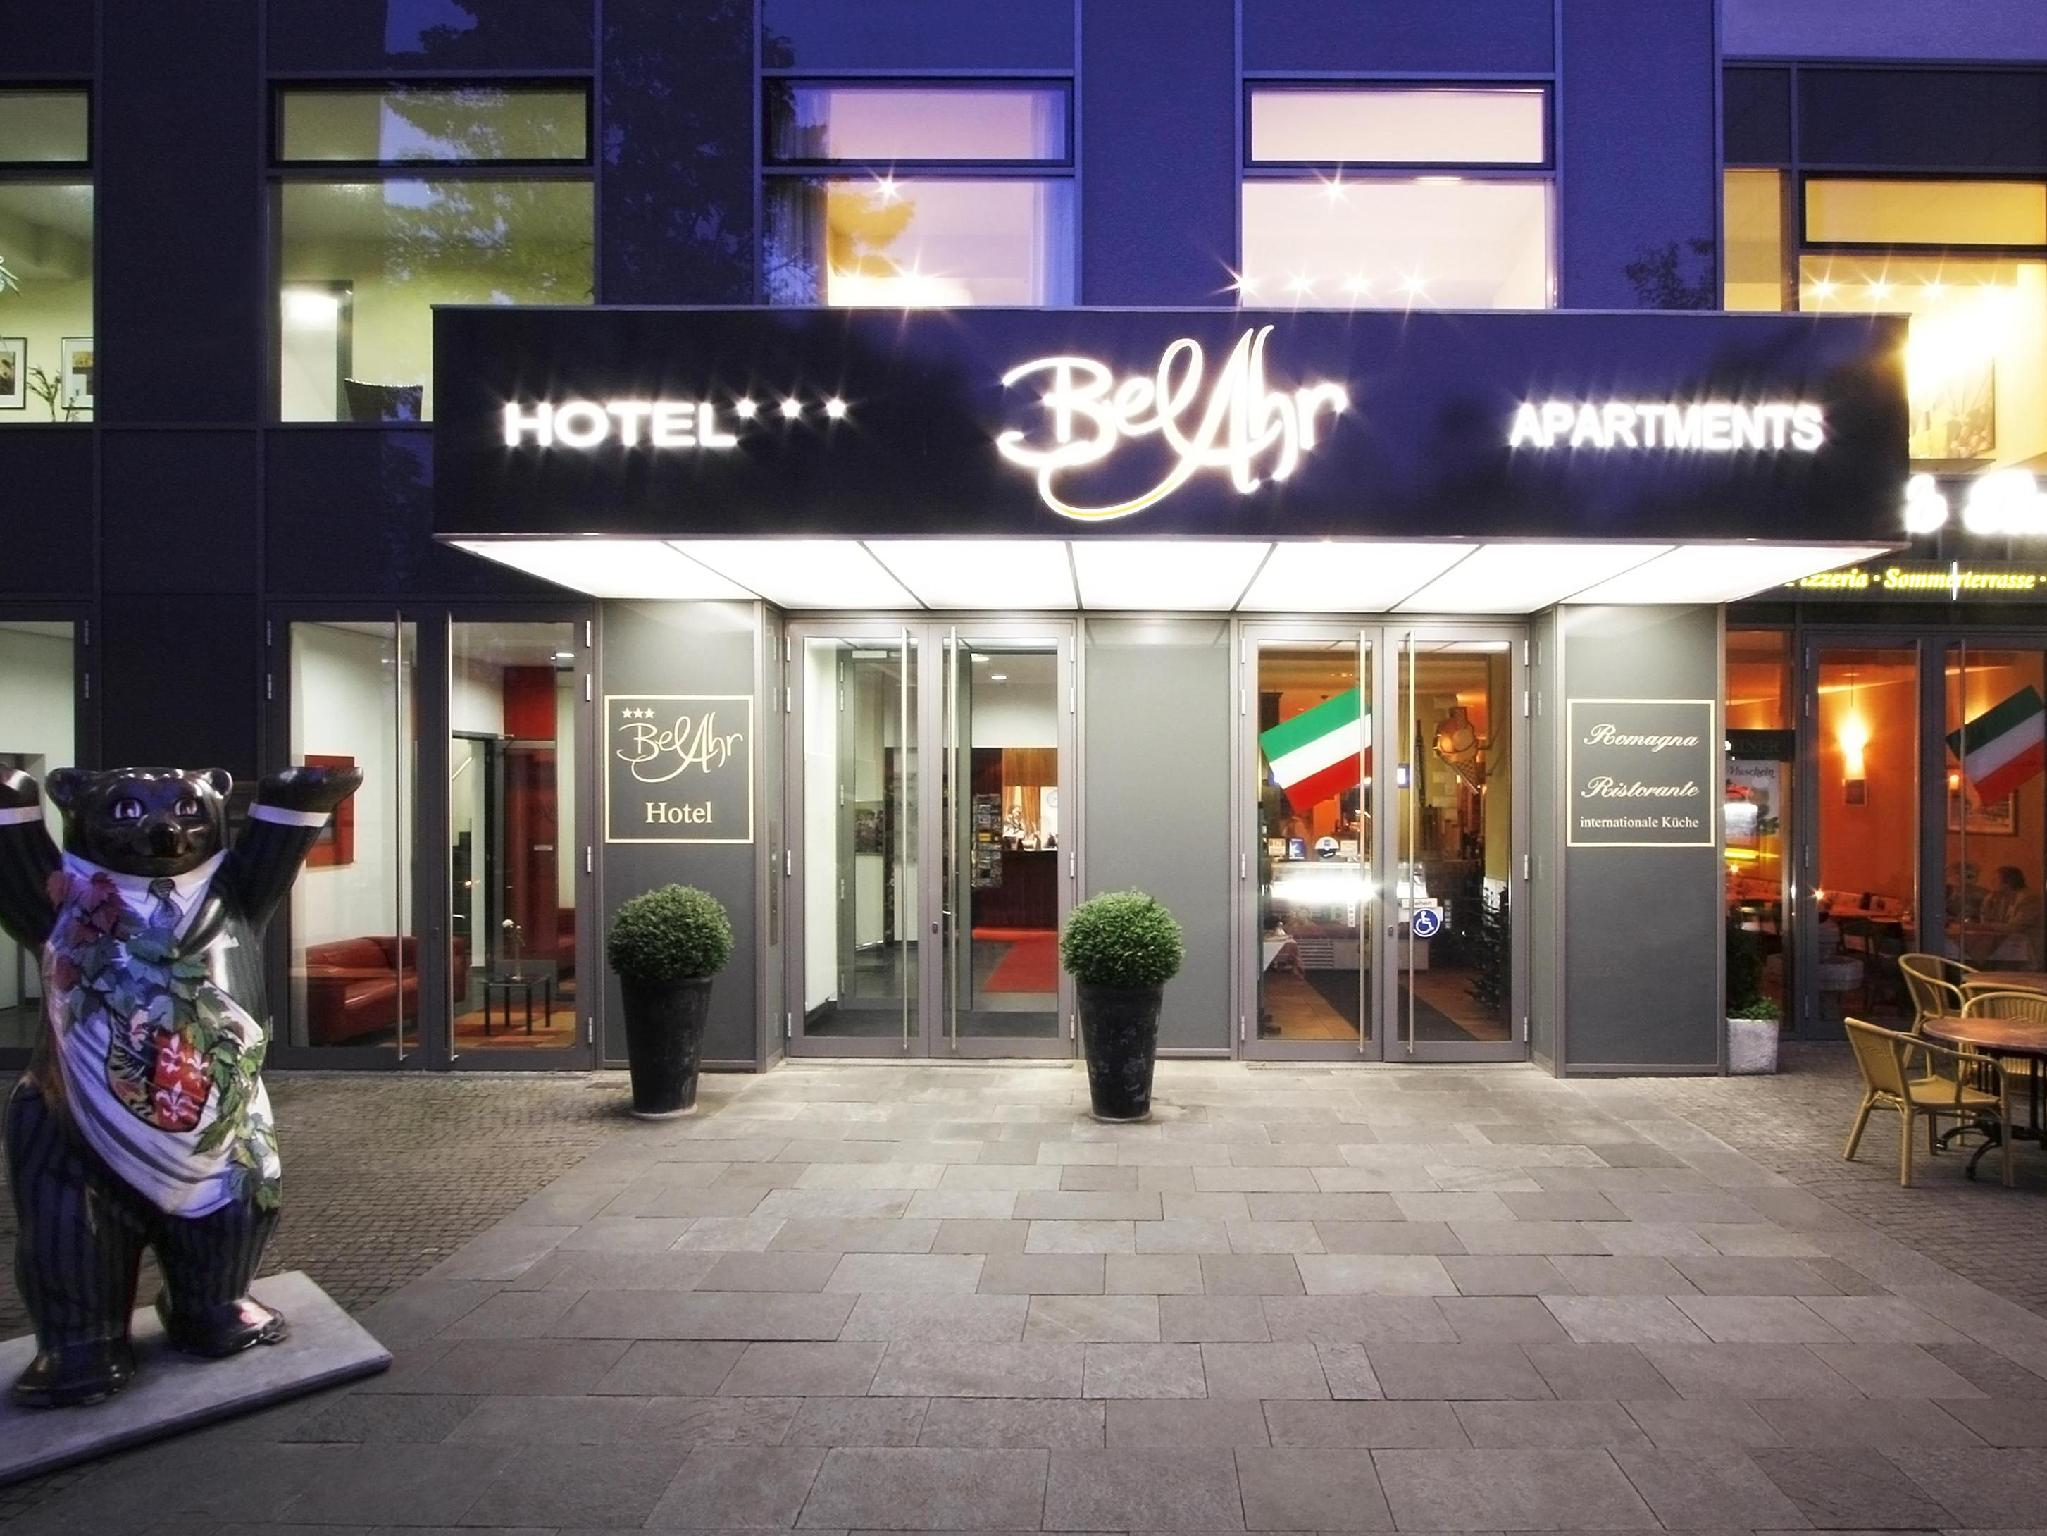 City Apartmenthotel Belahr am Potsdamer Platz बर्लिन